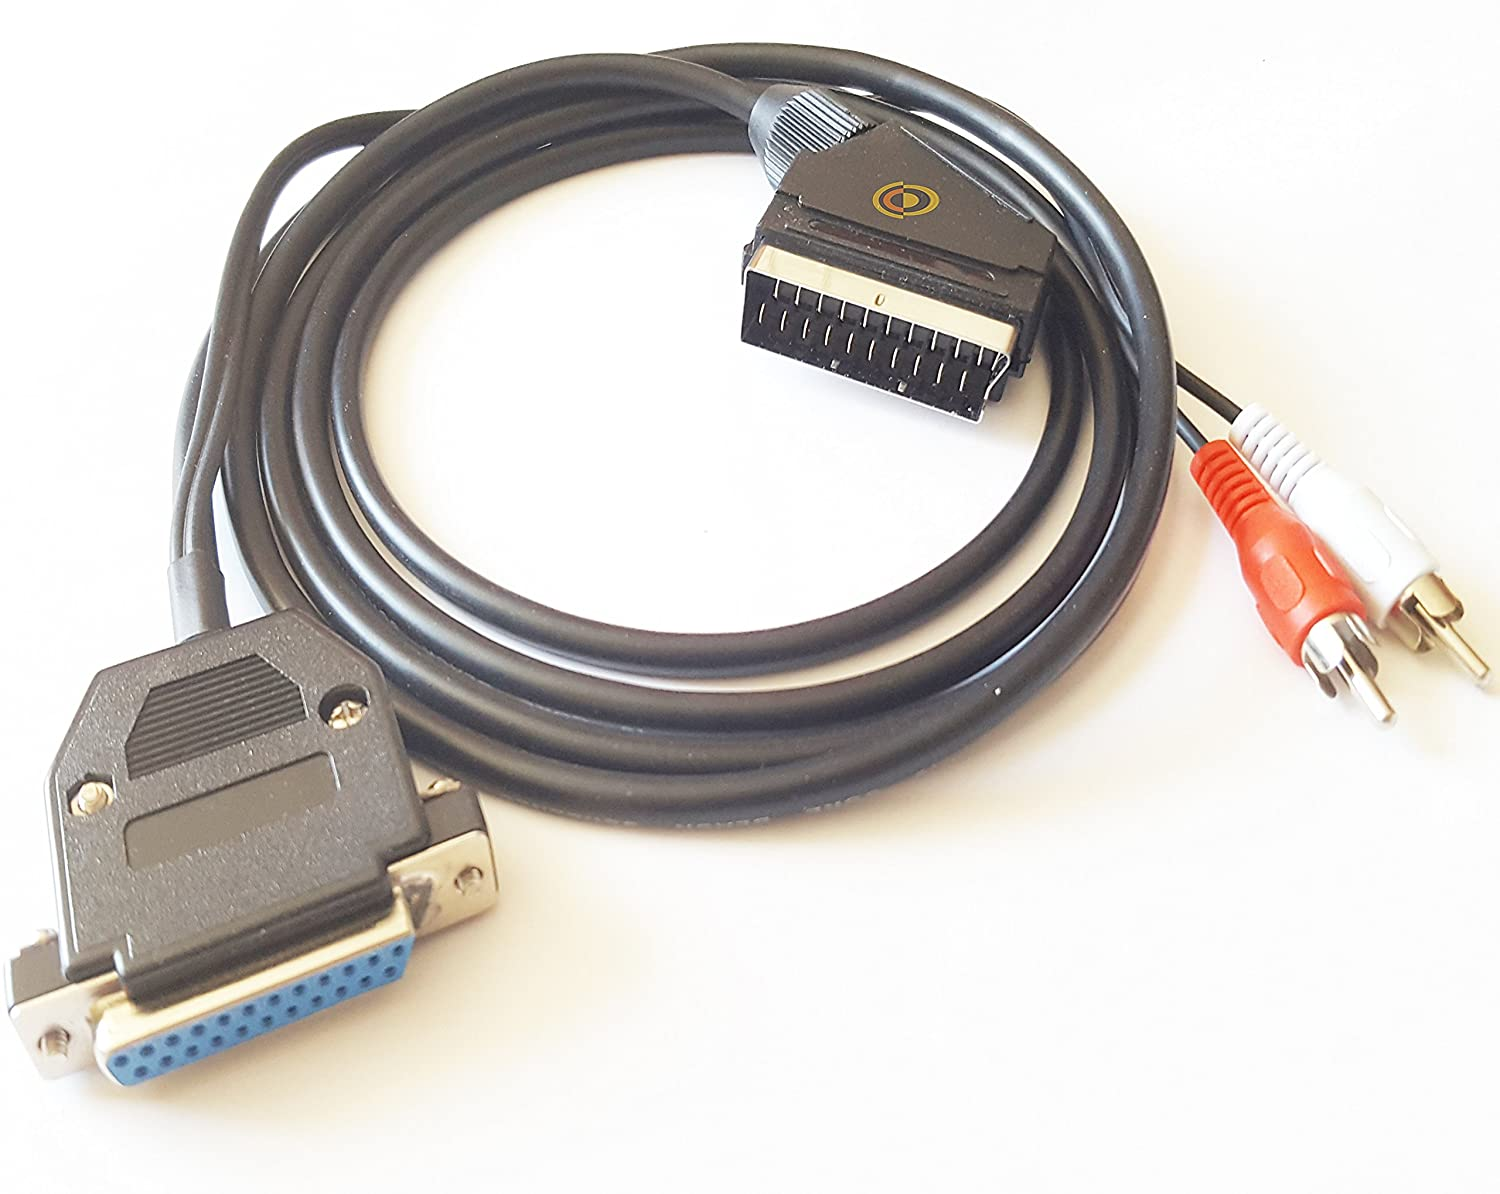 Commodore Amiga RGB 2 Metre Scart Cable with Stereo Audio by CoolNovelties